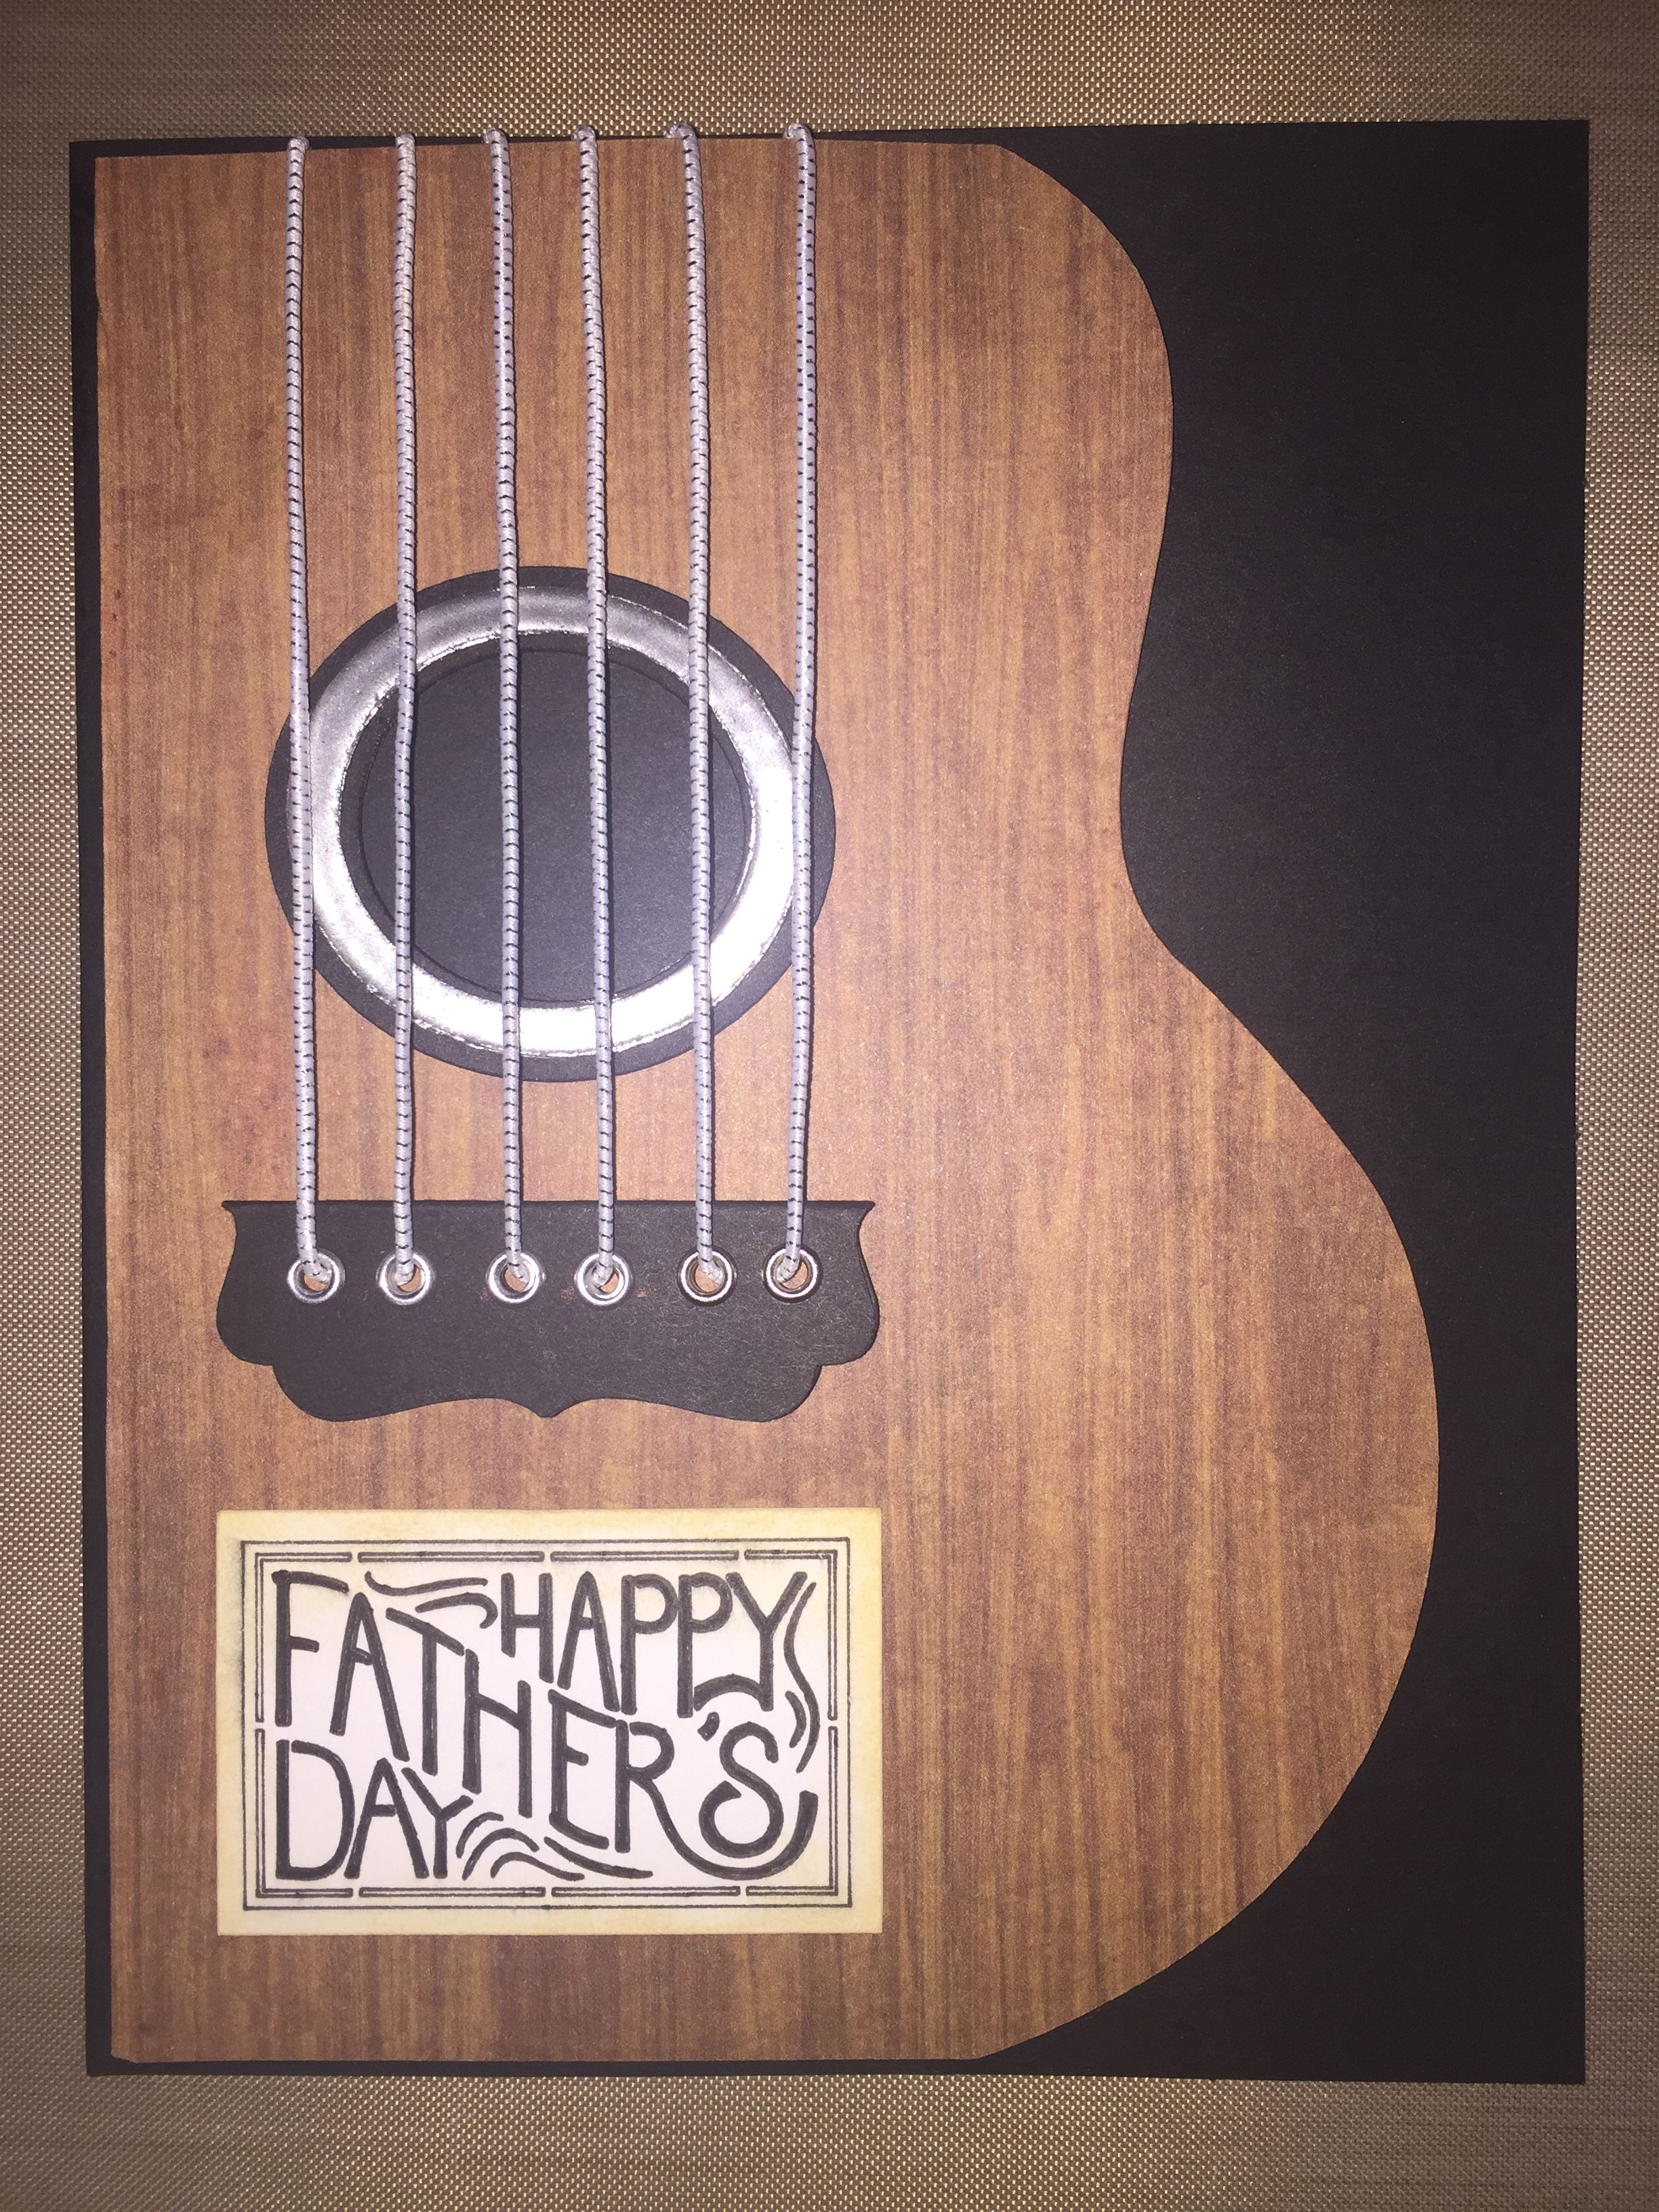 Guitar card for Father's Day using Cricut